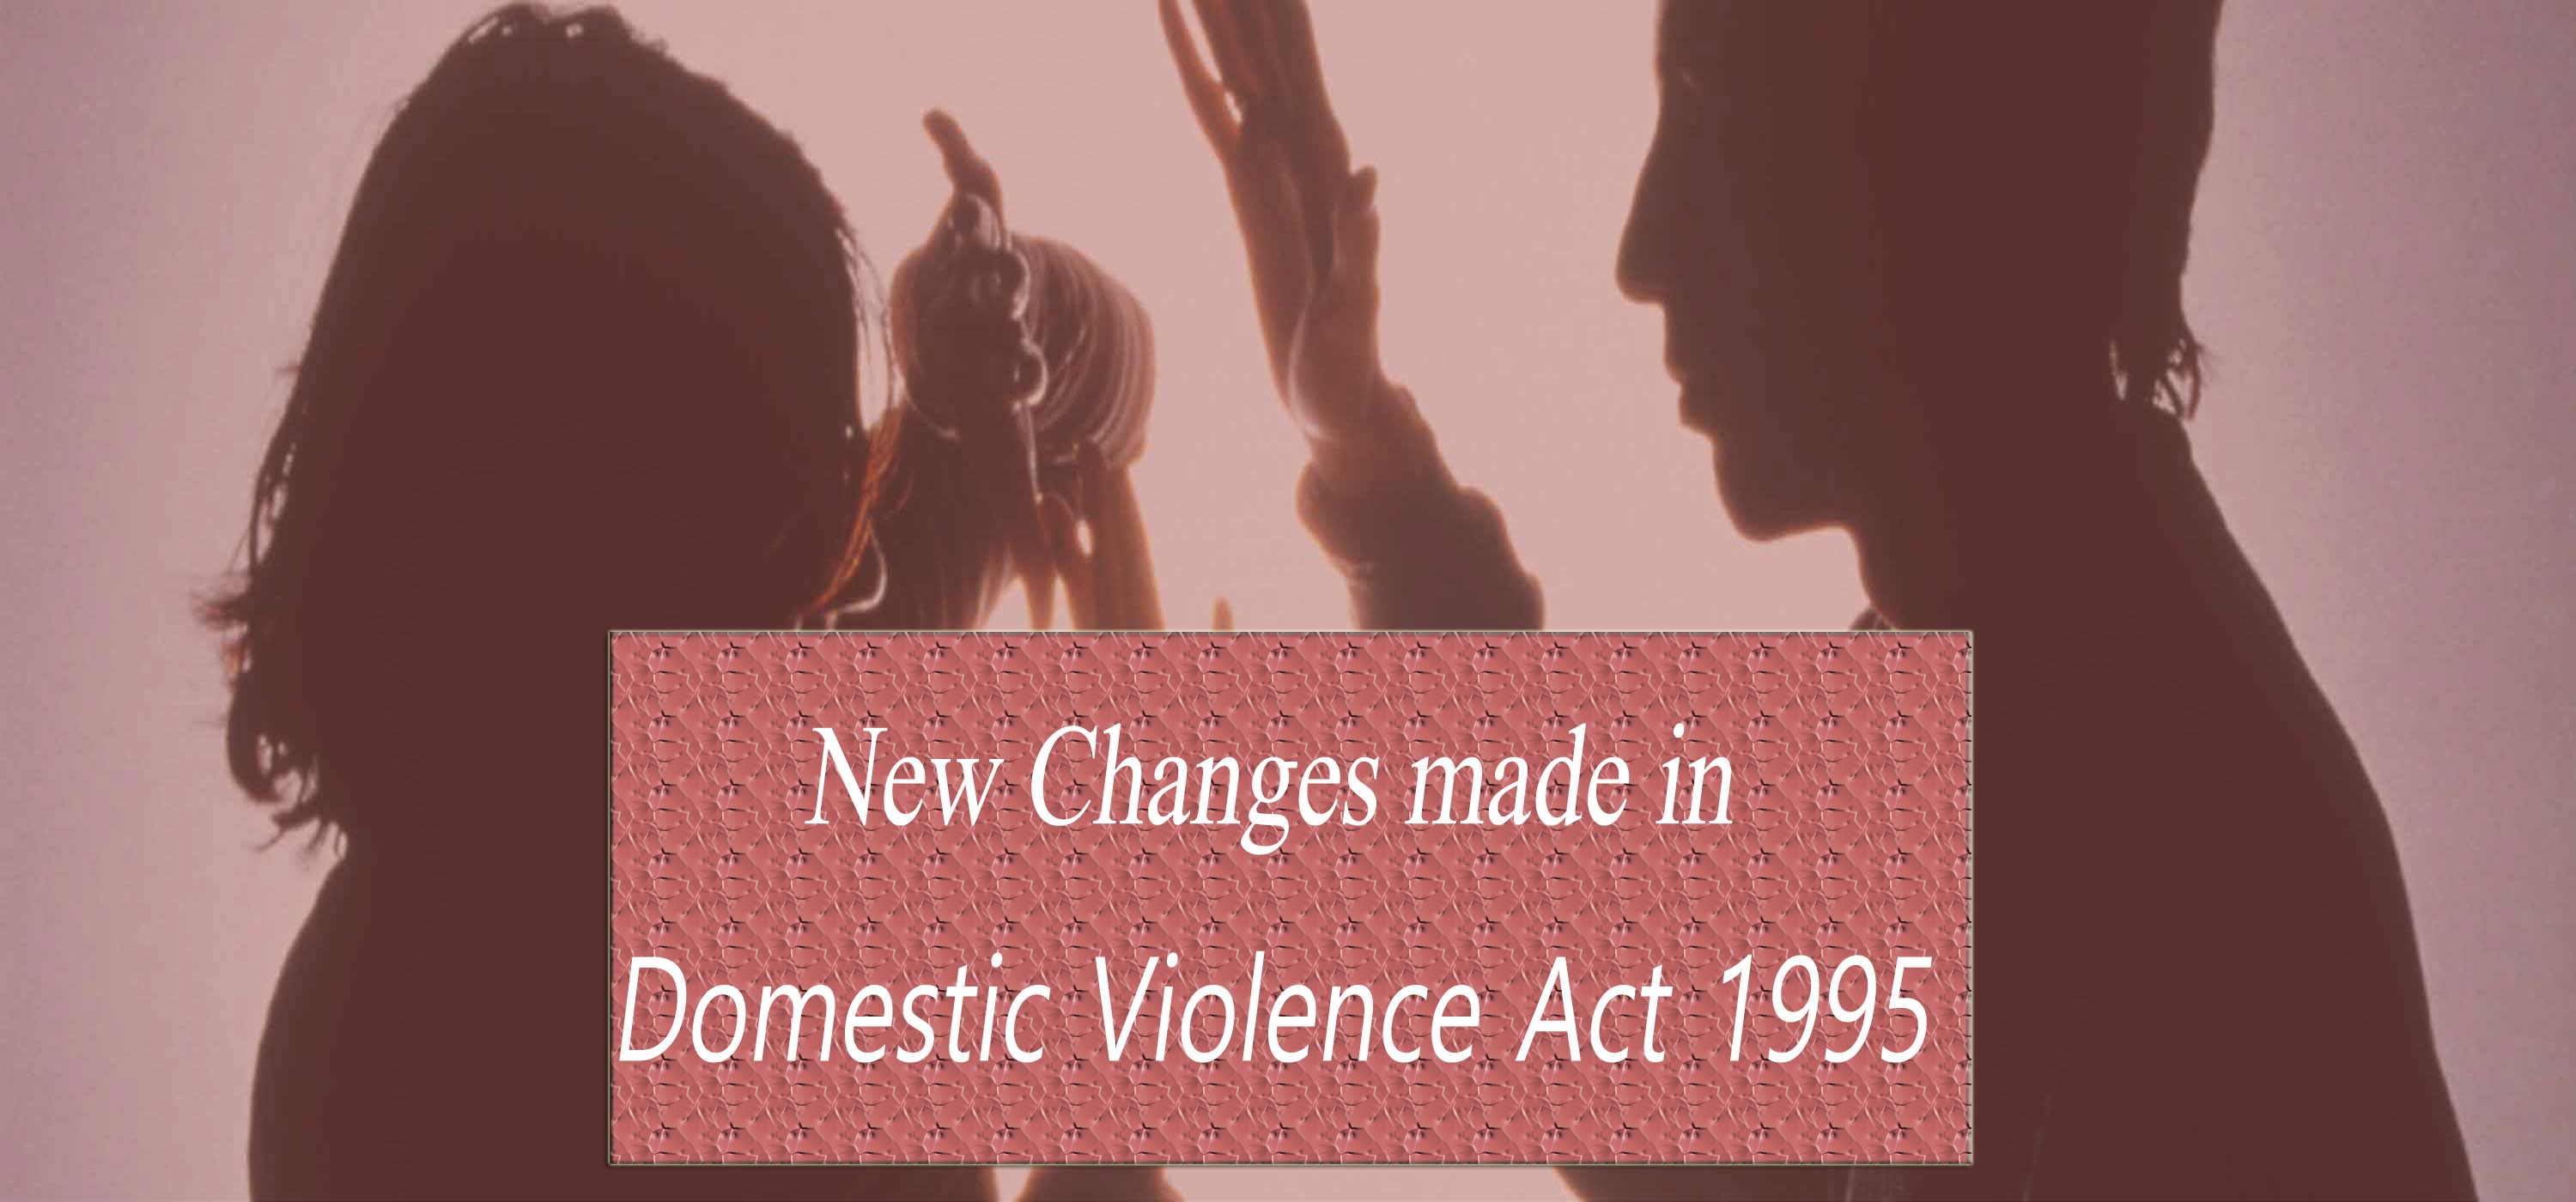 New Changes Made in Domestic Violence Act 1995